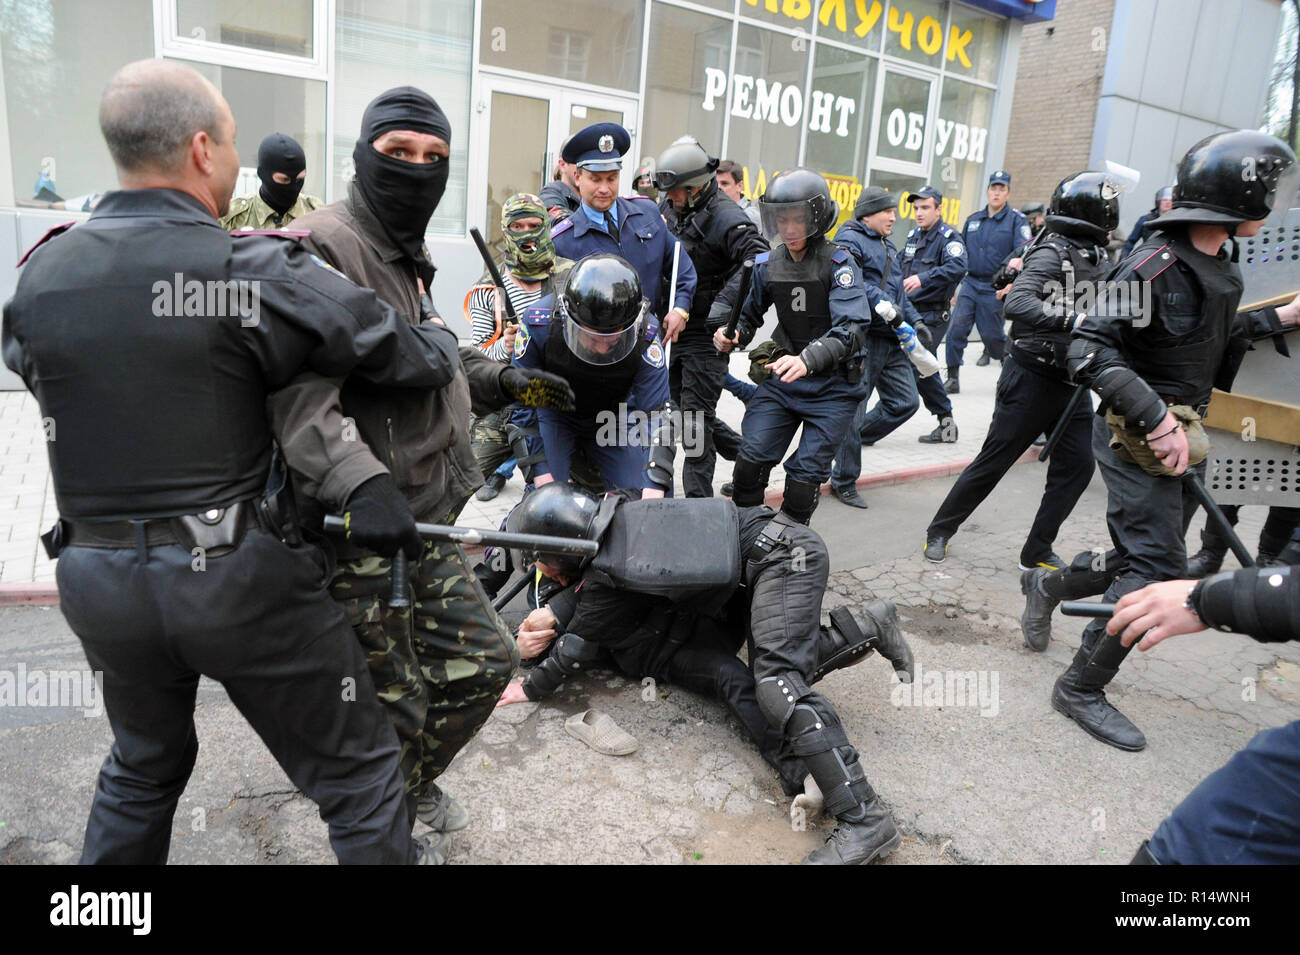 "April 28, 2014 - Donetsk, Ukraine: An Ukrainian riot police officer dives on a pro-Ukraine demonstrator in order to protect him from his pro-Russia aggressors.Pro-Russia militants attacked Ukrainians who demonstrated peacefully for the preservation of the unity of their country. The pro-Russian separatist group, mostly youths in balaclava, then celebrated their actions by screaming they had smashed ""the fascists"". Une manifestation pacifique en faveur de l'unite de l'Ukraine a Donetsk est brutalement dispersee par des groupes separatistes pro-russes armes de batons et, pour certains, d'armes b Stock Photo"